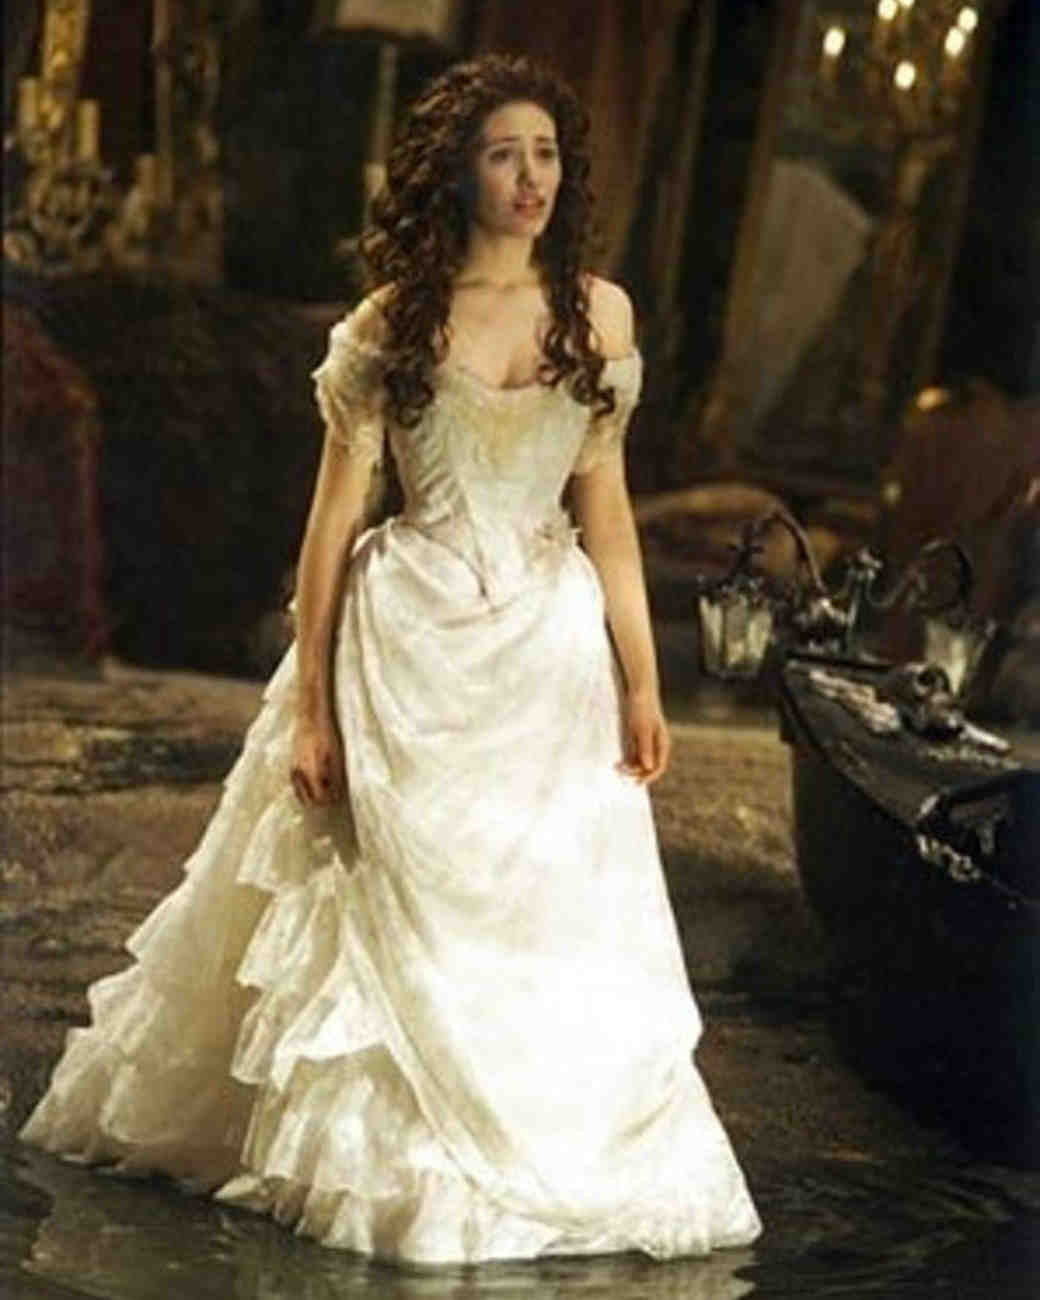 movie-wedding-dresses-the-phantom-of-the-opera-emmy-rossum-0316.jpg